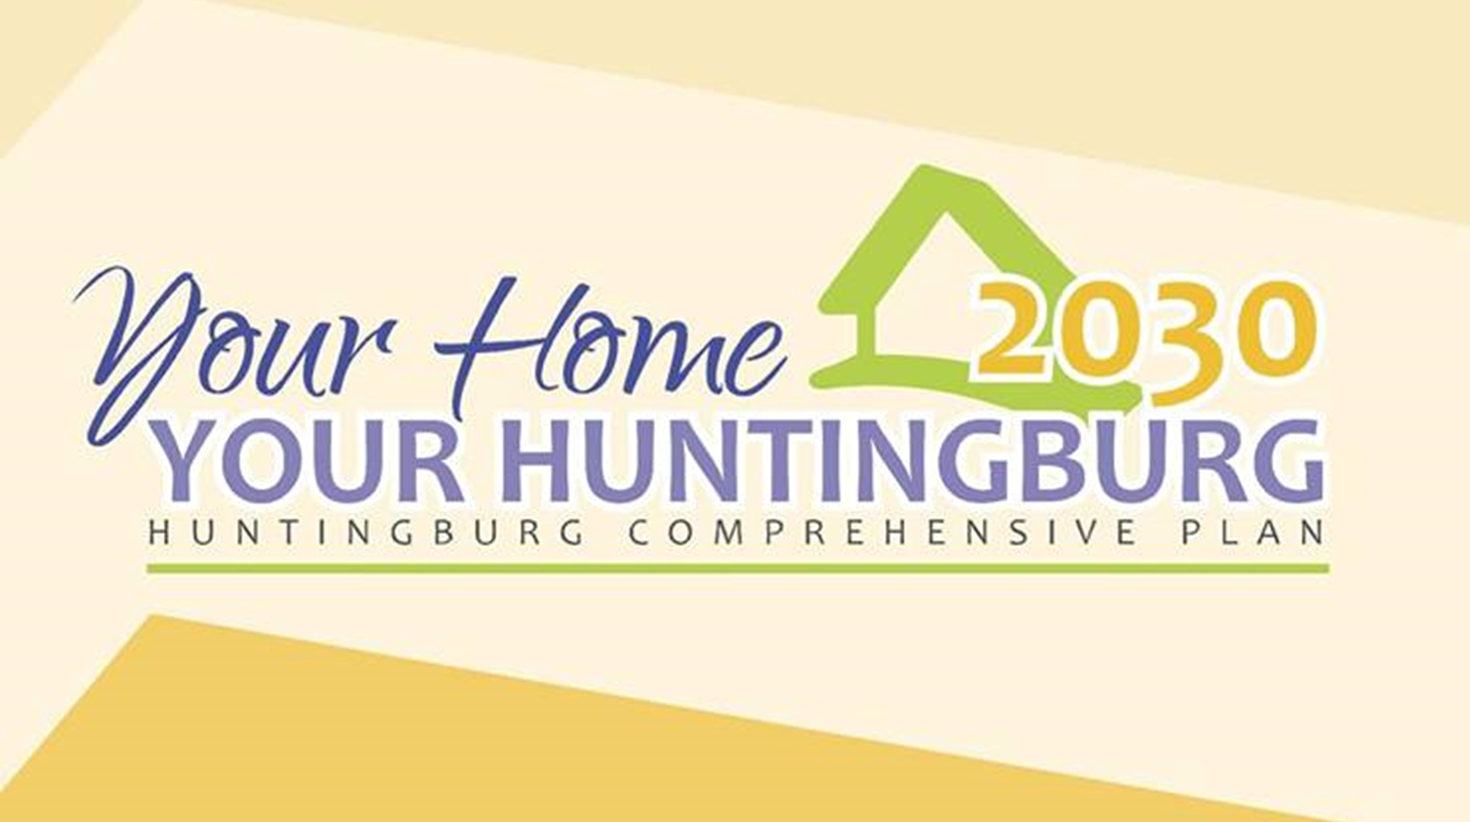 Huntingburg Officials Urging Residents to Take Survey on a New Comprehensive Plan